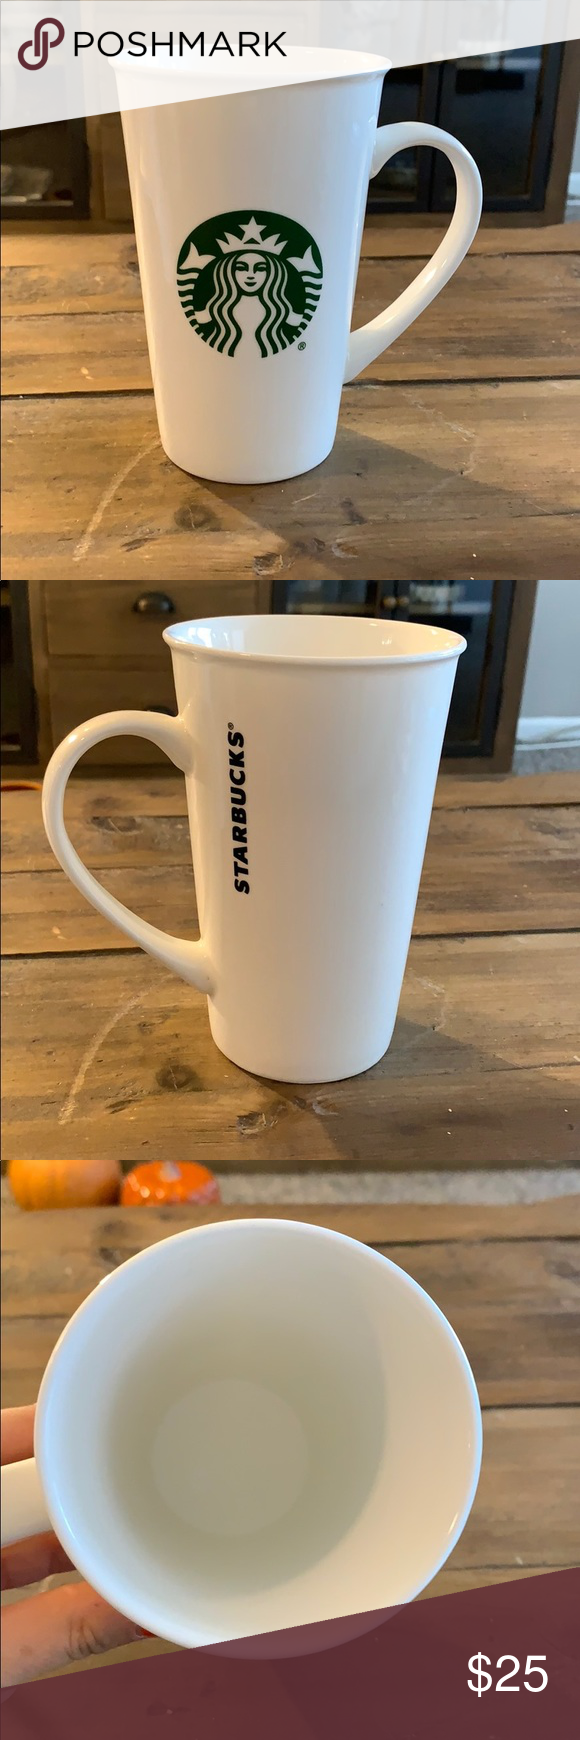 BOGO 18 oz. Starbucks Mug 18 oz Starbucks mug  Microwave and dishwasher safe Starbucks Kitchen Coffee & Tea Accessories #myposhpicks